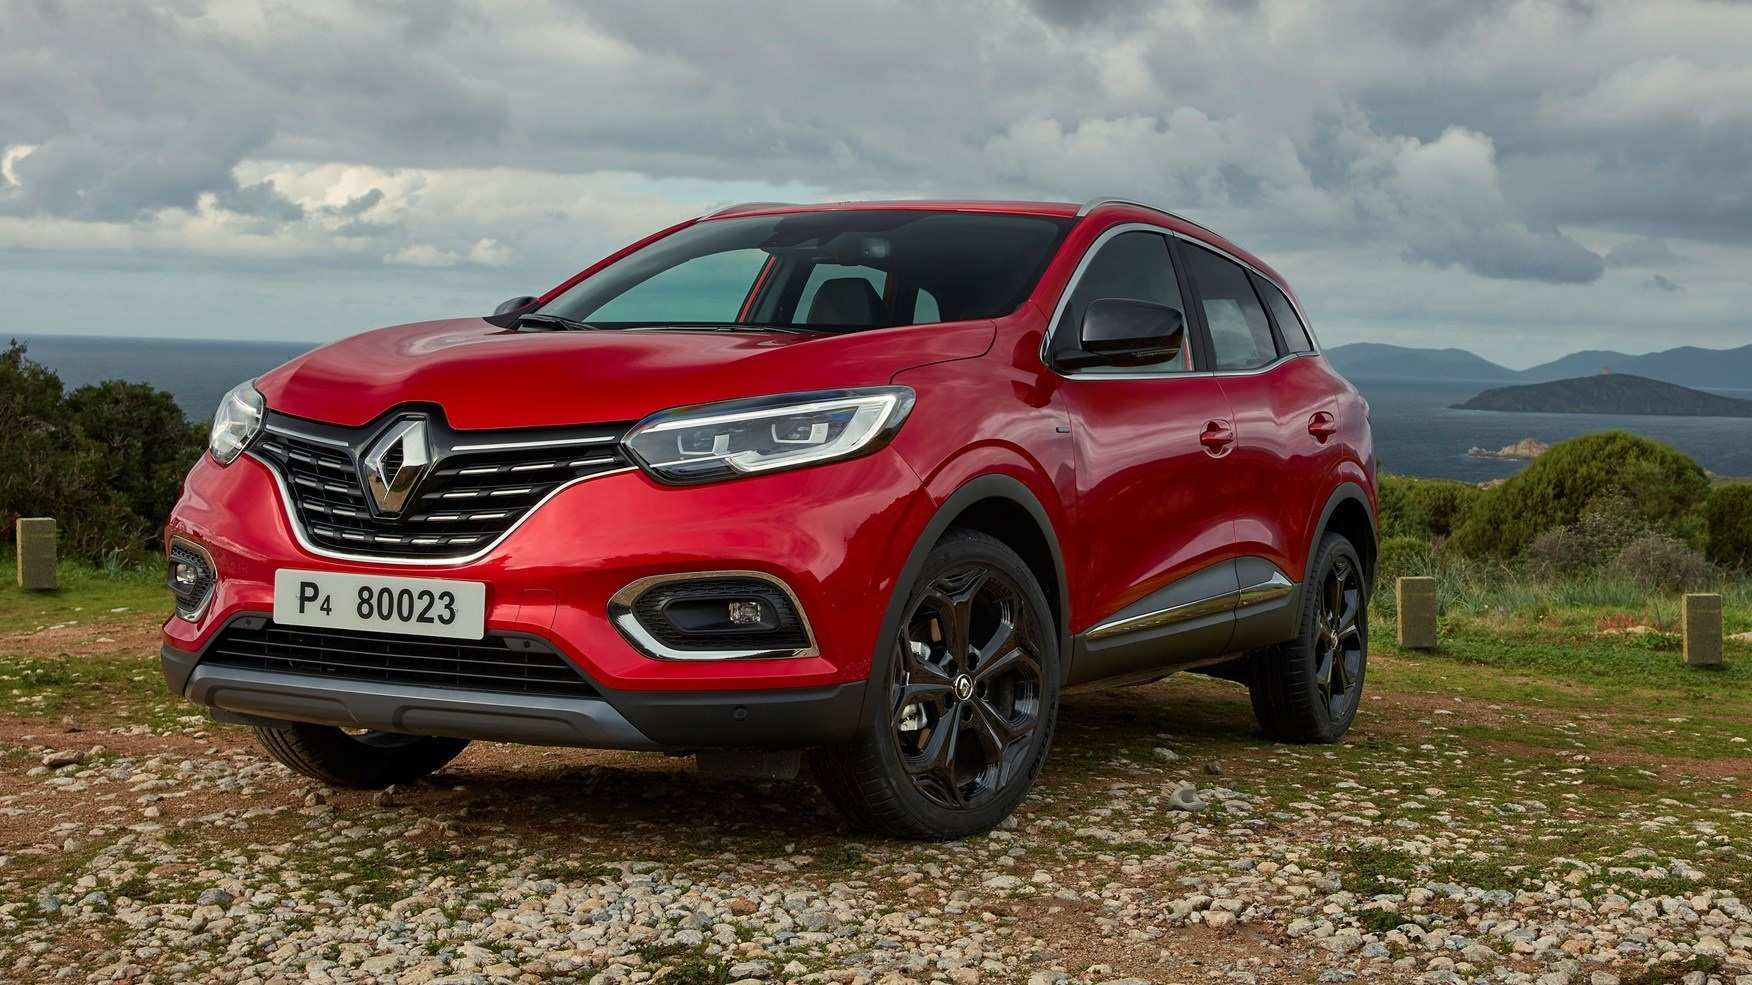 91 All New 2019 Renault Megane SUV Concept